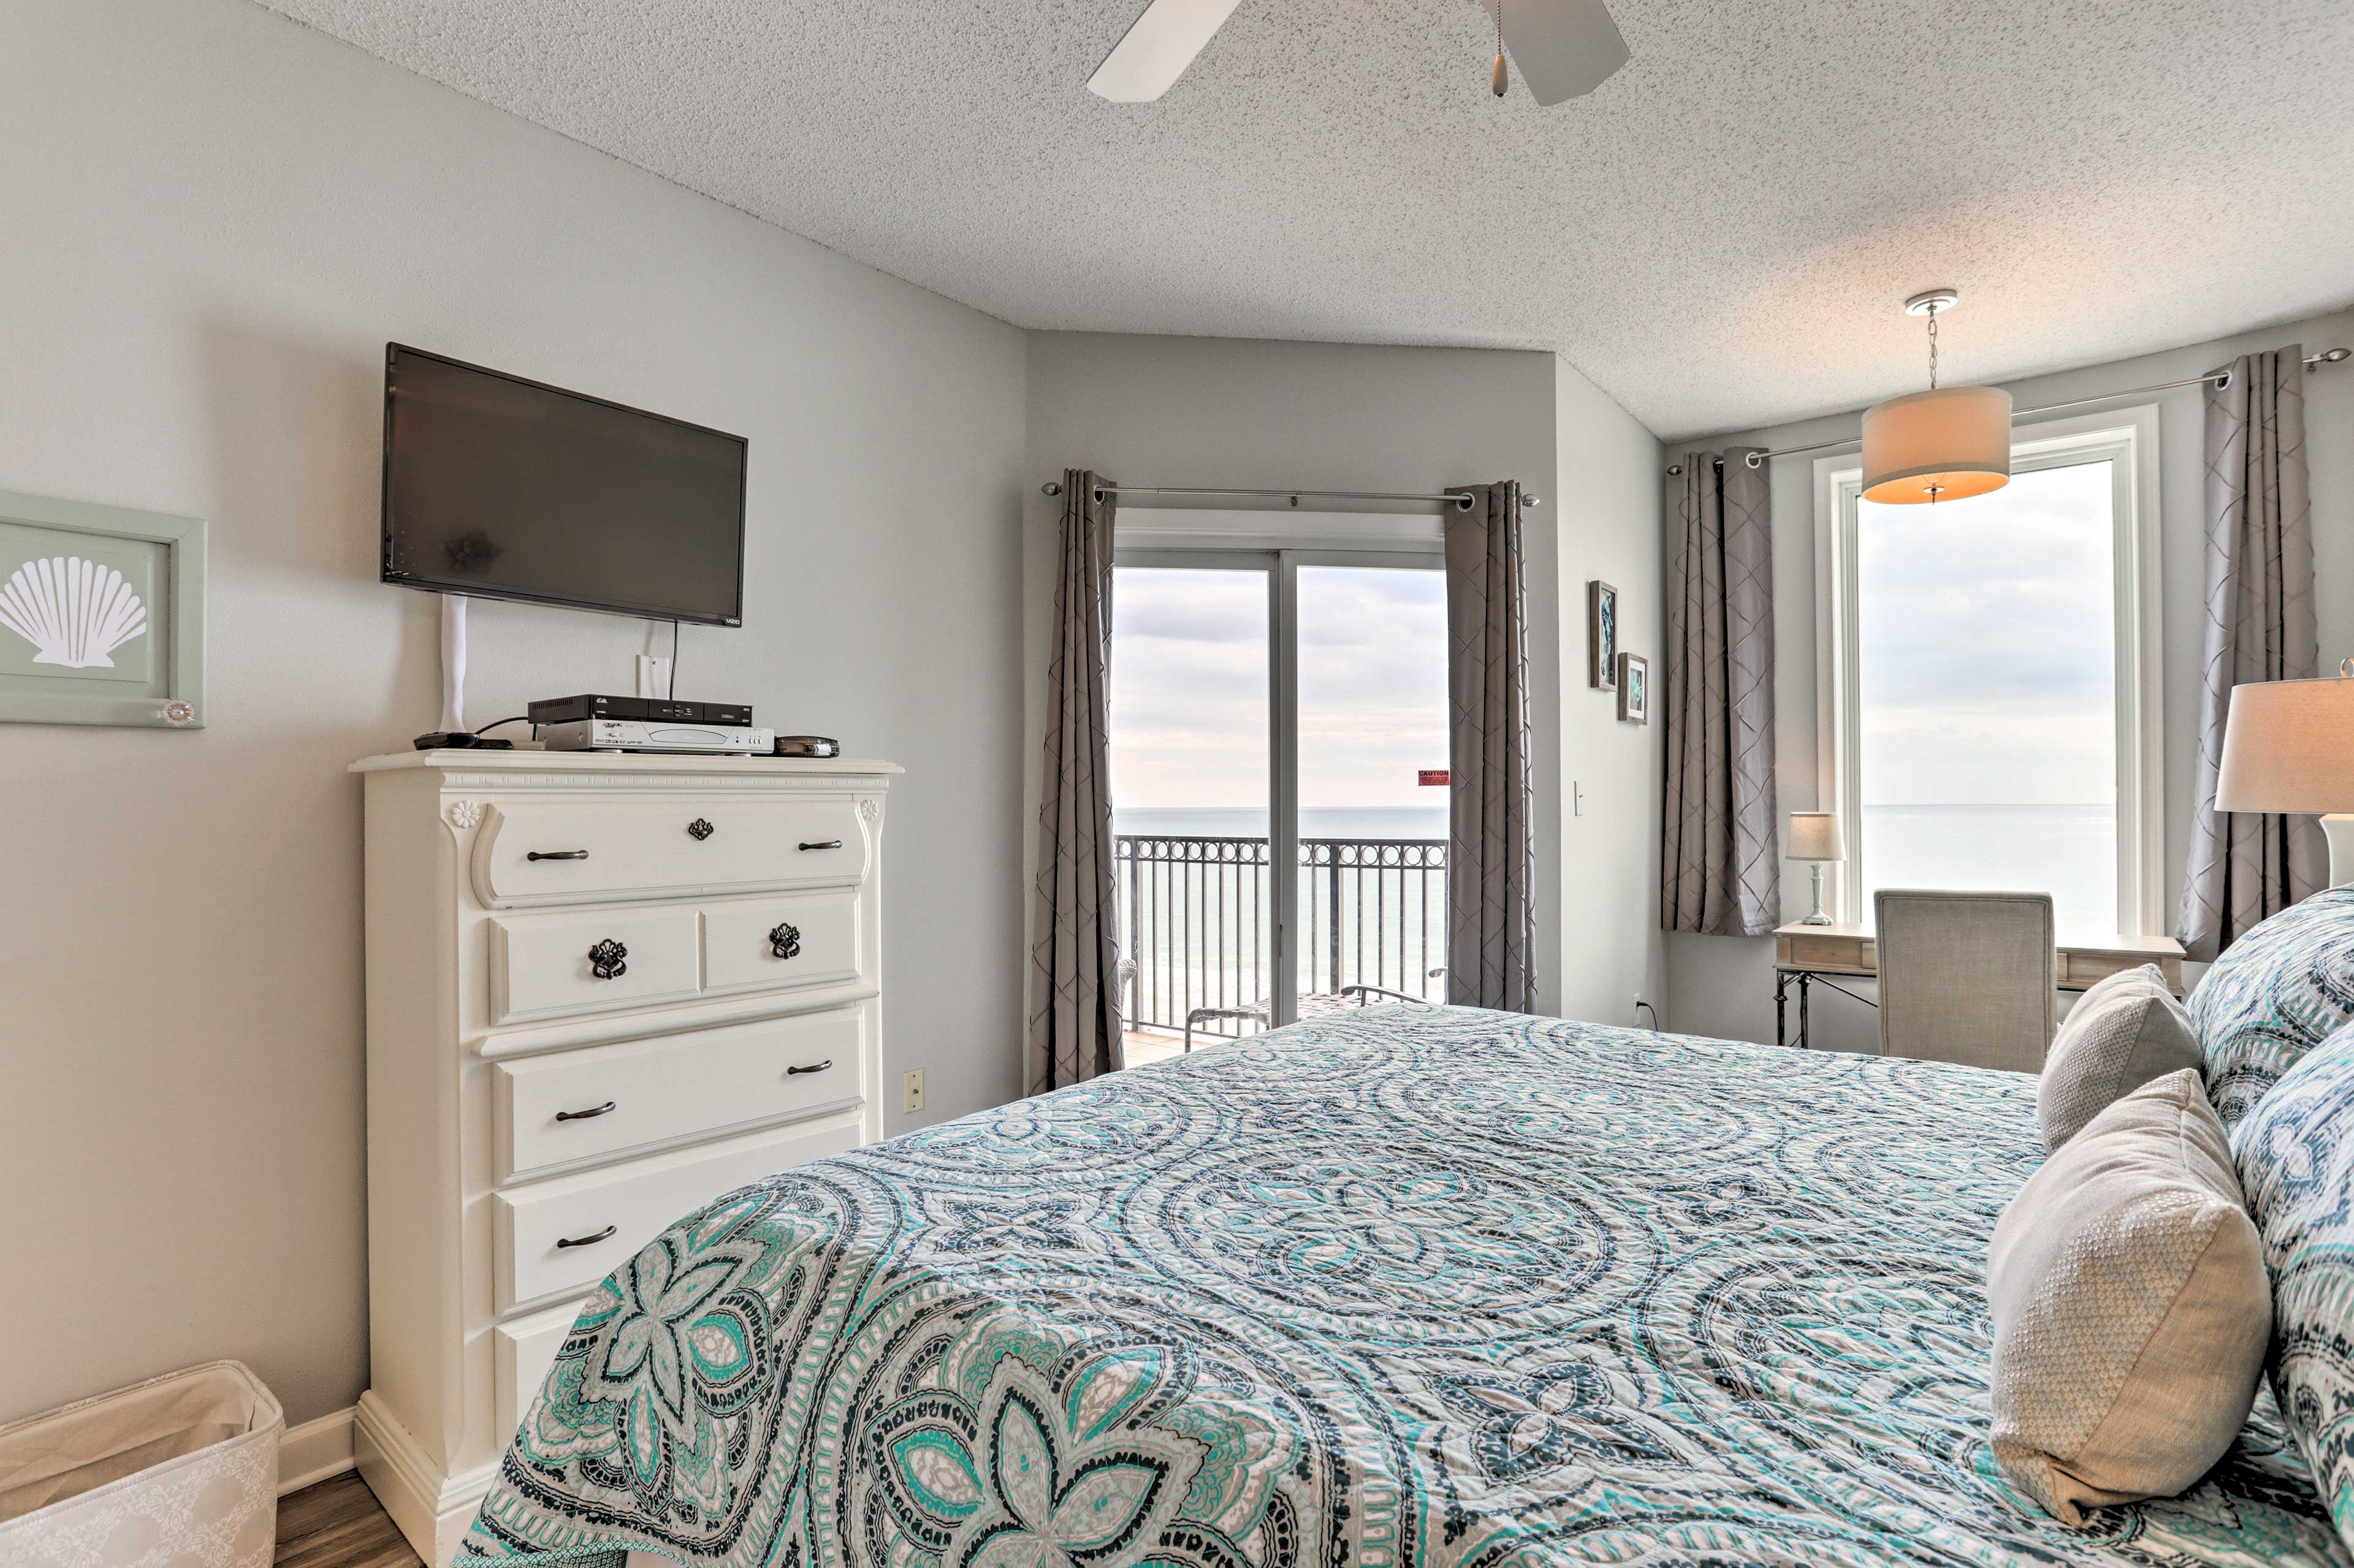 Lie back and enjoy a show on the flat-screen cable TV in the master bedroom.